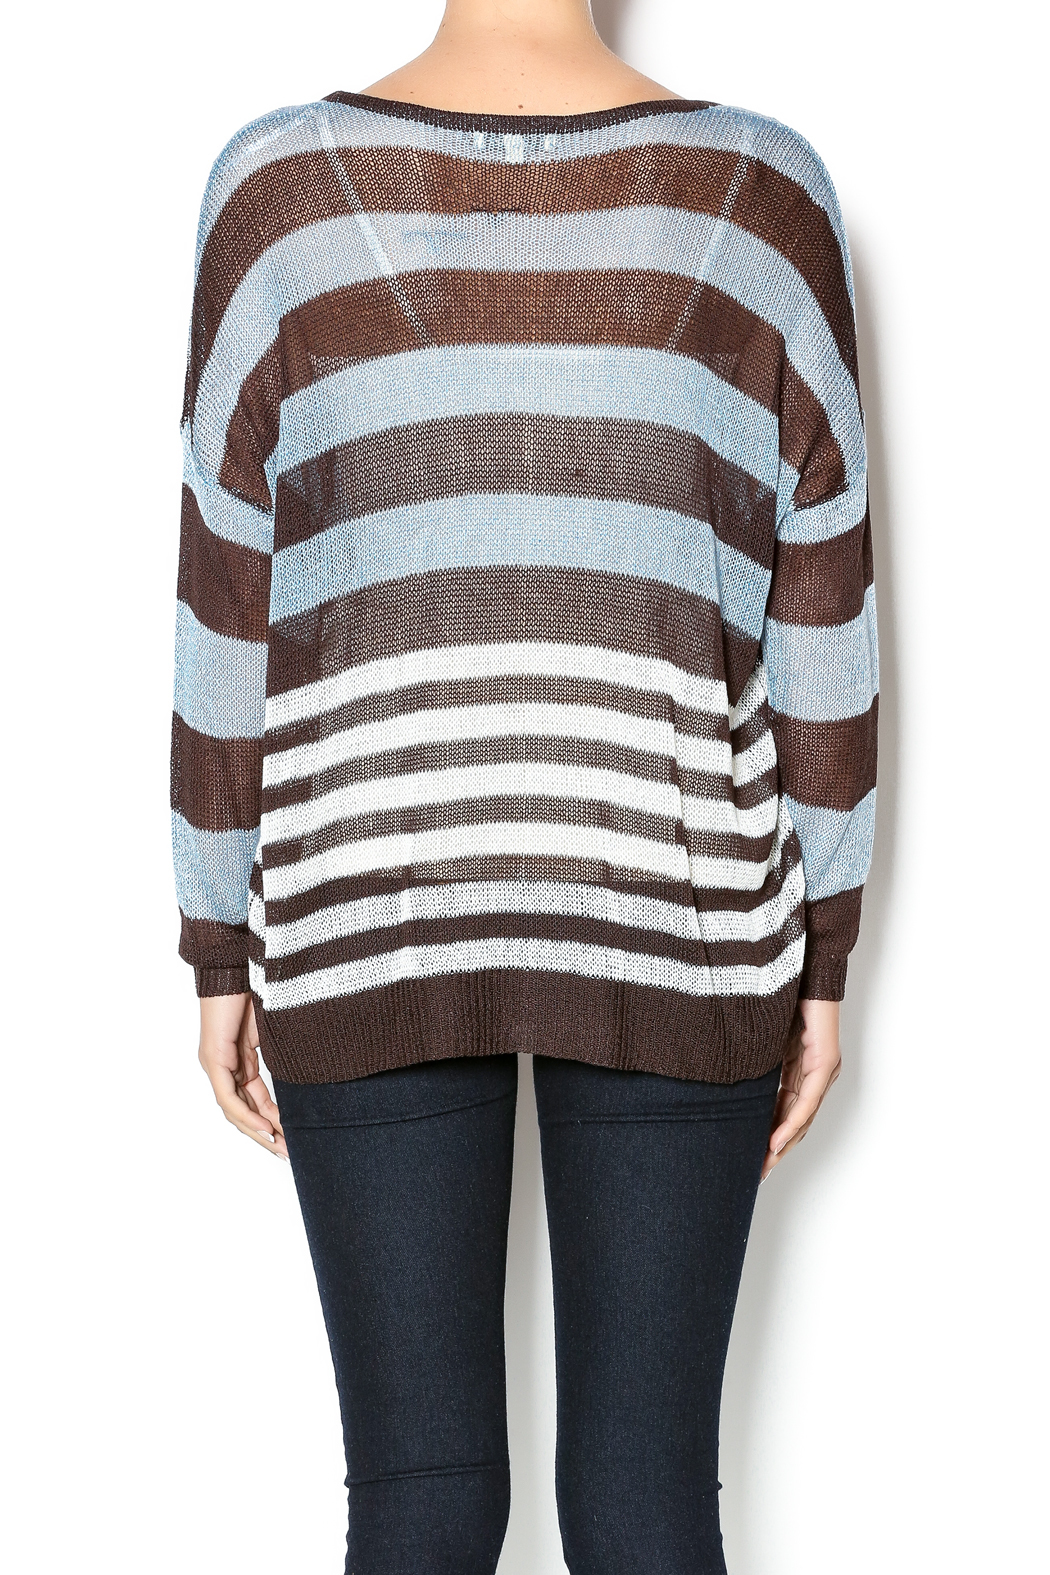 Cecico Blue Brown Sweater from Michigan by Trends & Traditions ...